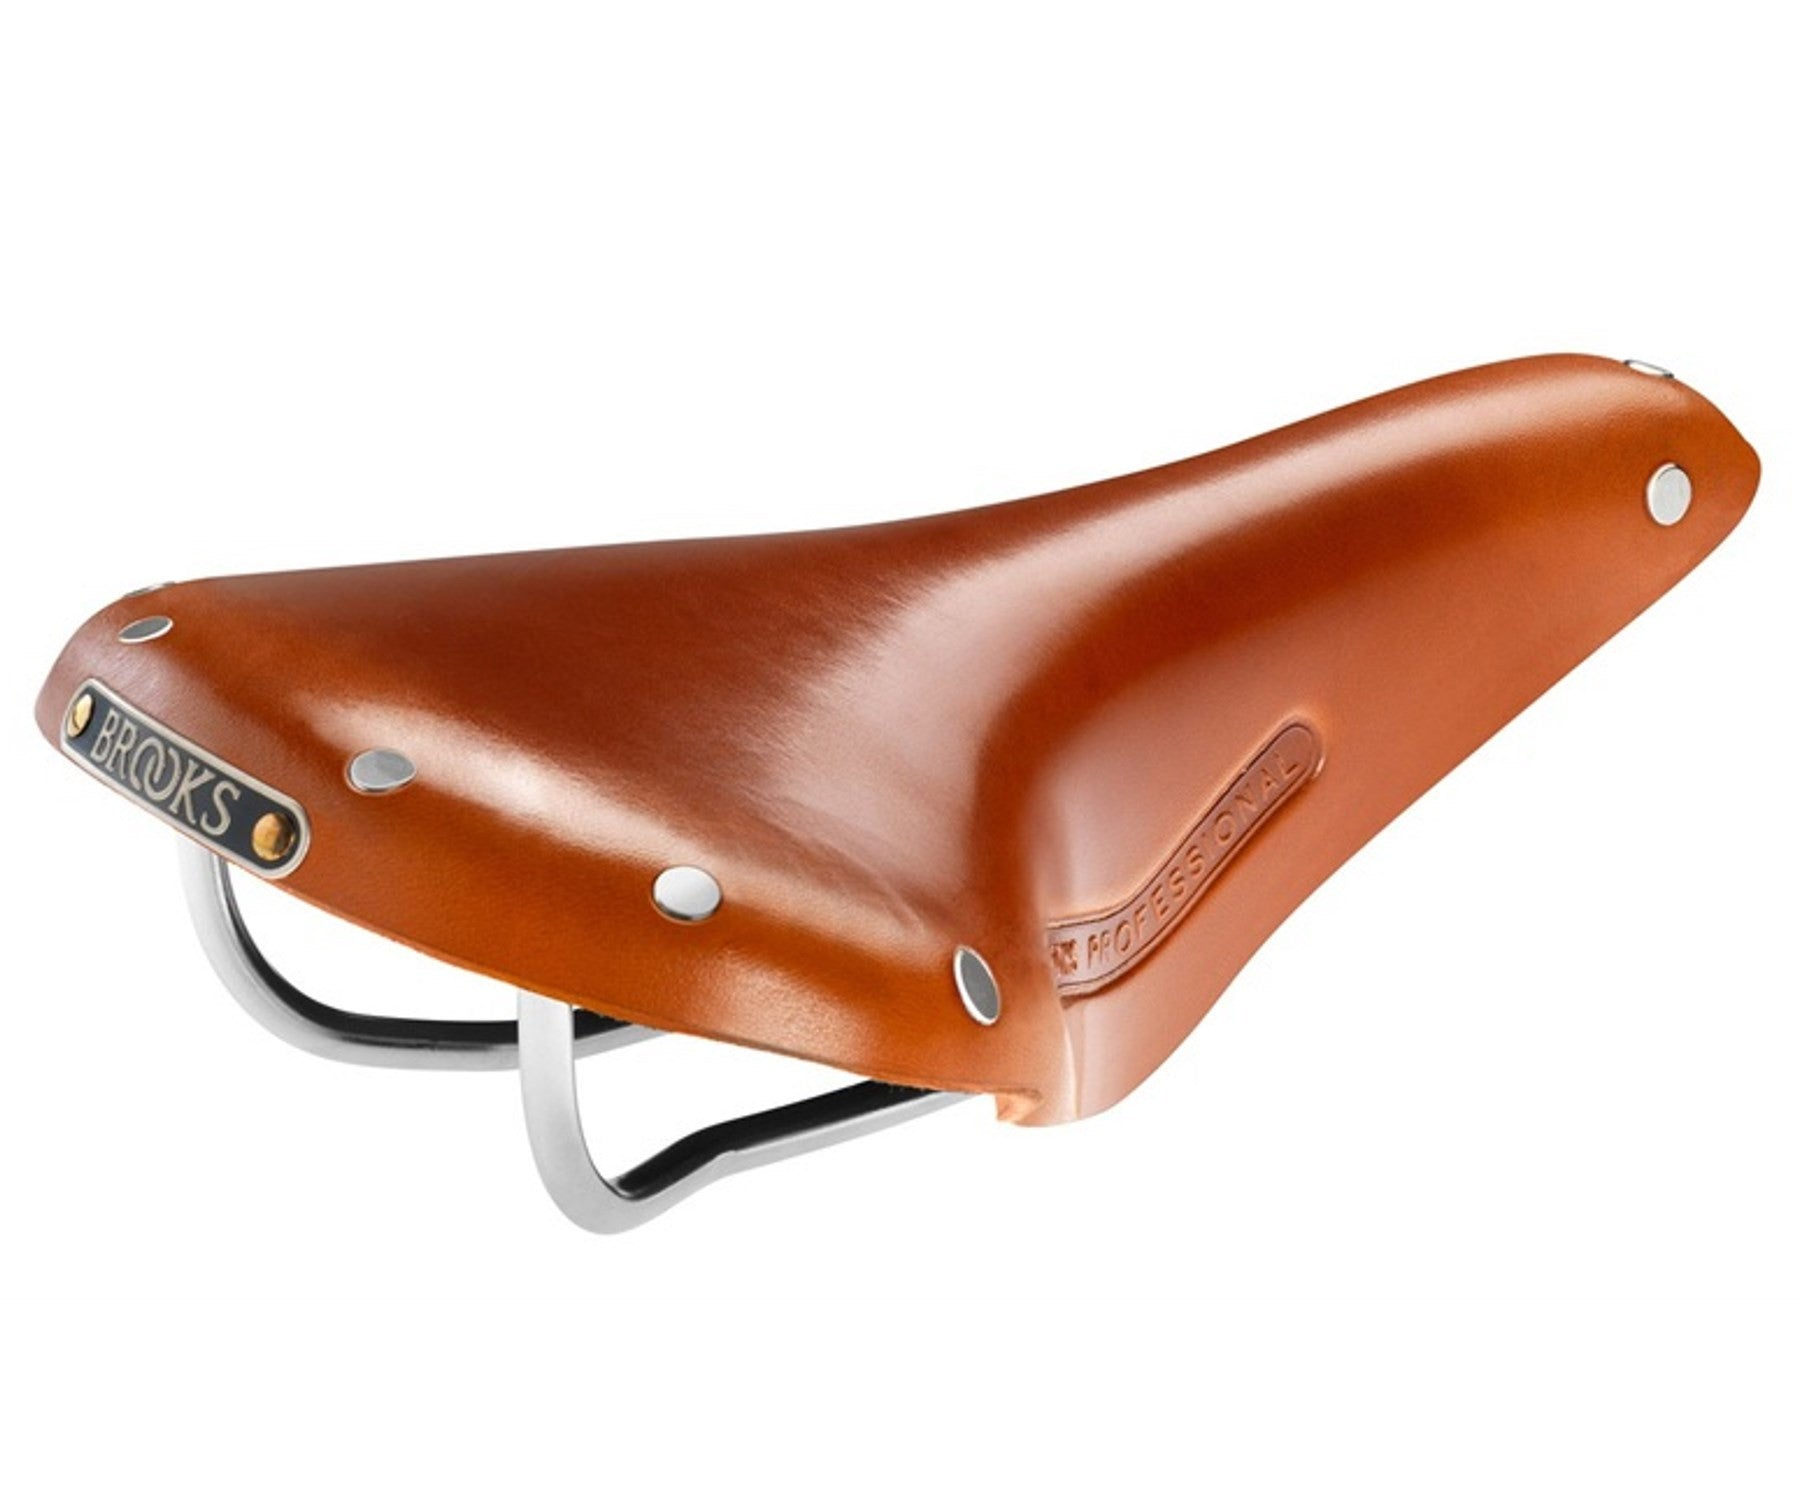 Brooks Team Pro Classic saddle - Retrogression